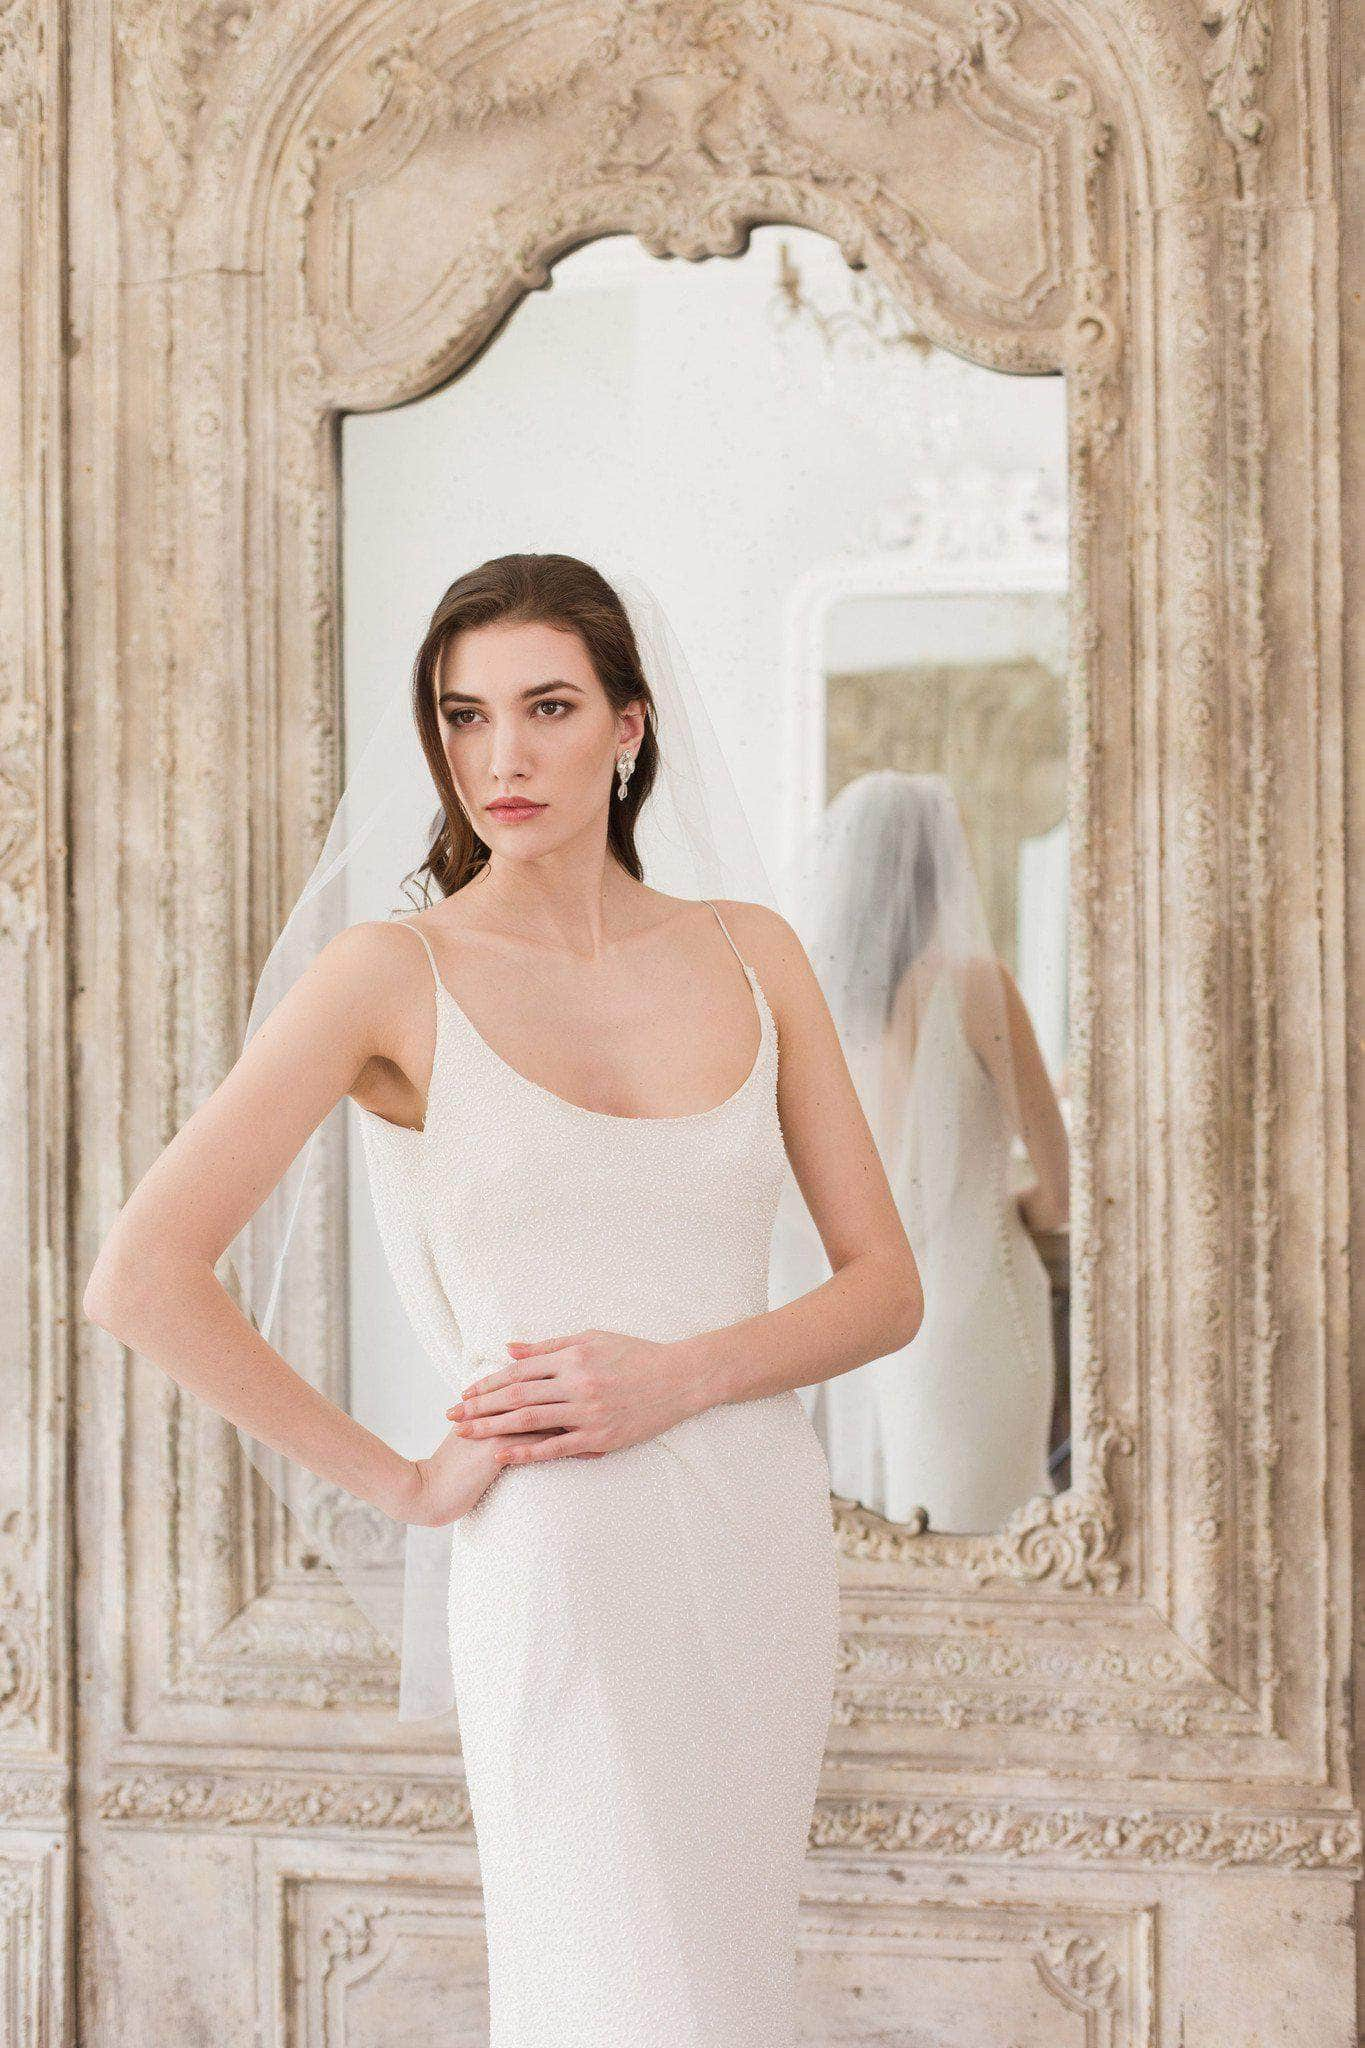 Wedding Veil Fingertip length single tier cut edge wedding veil - 'Niacae'